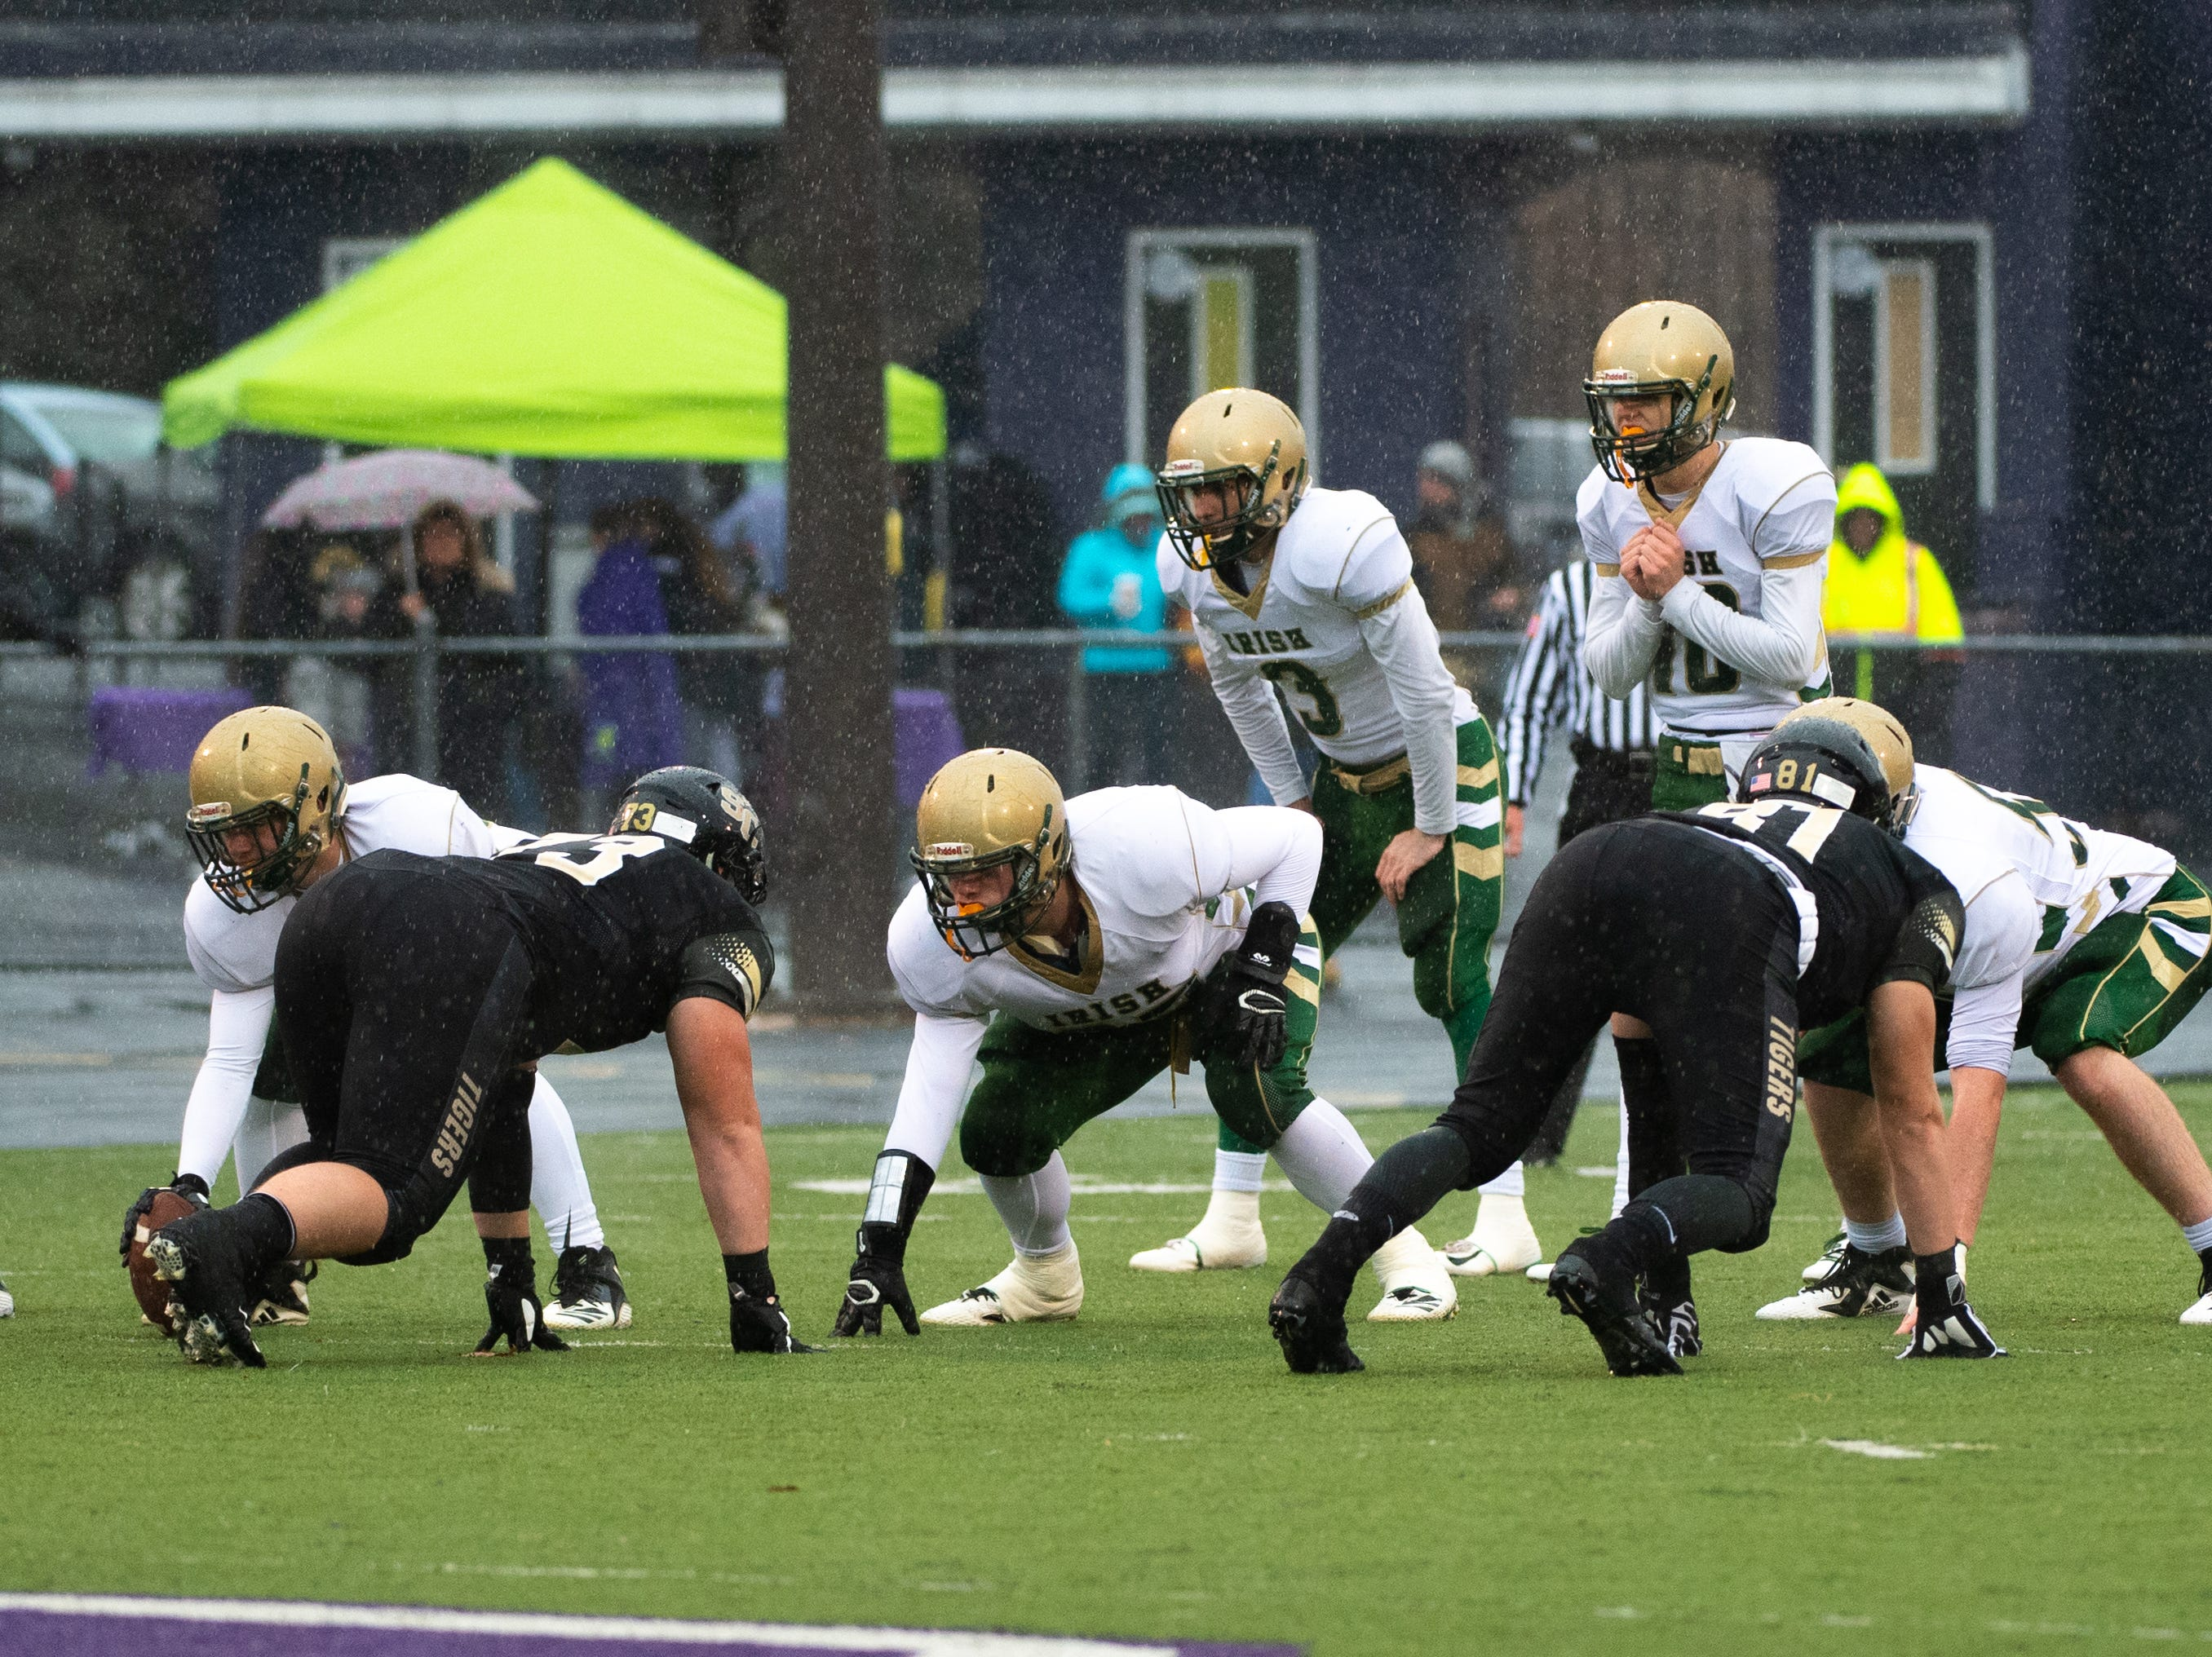 York Catholic prepares to snap the ball during the state quarter-finals game at Shamokin Area High School, November 24, 2018. The Tigers defeated the Irish 56-23.